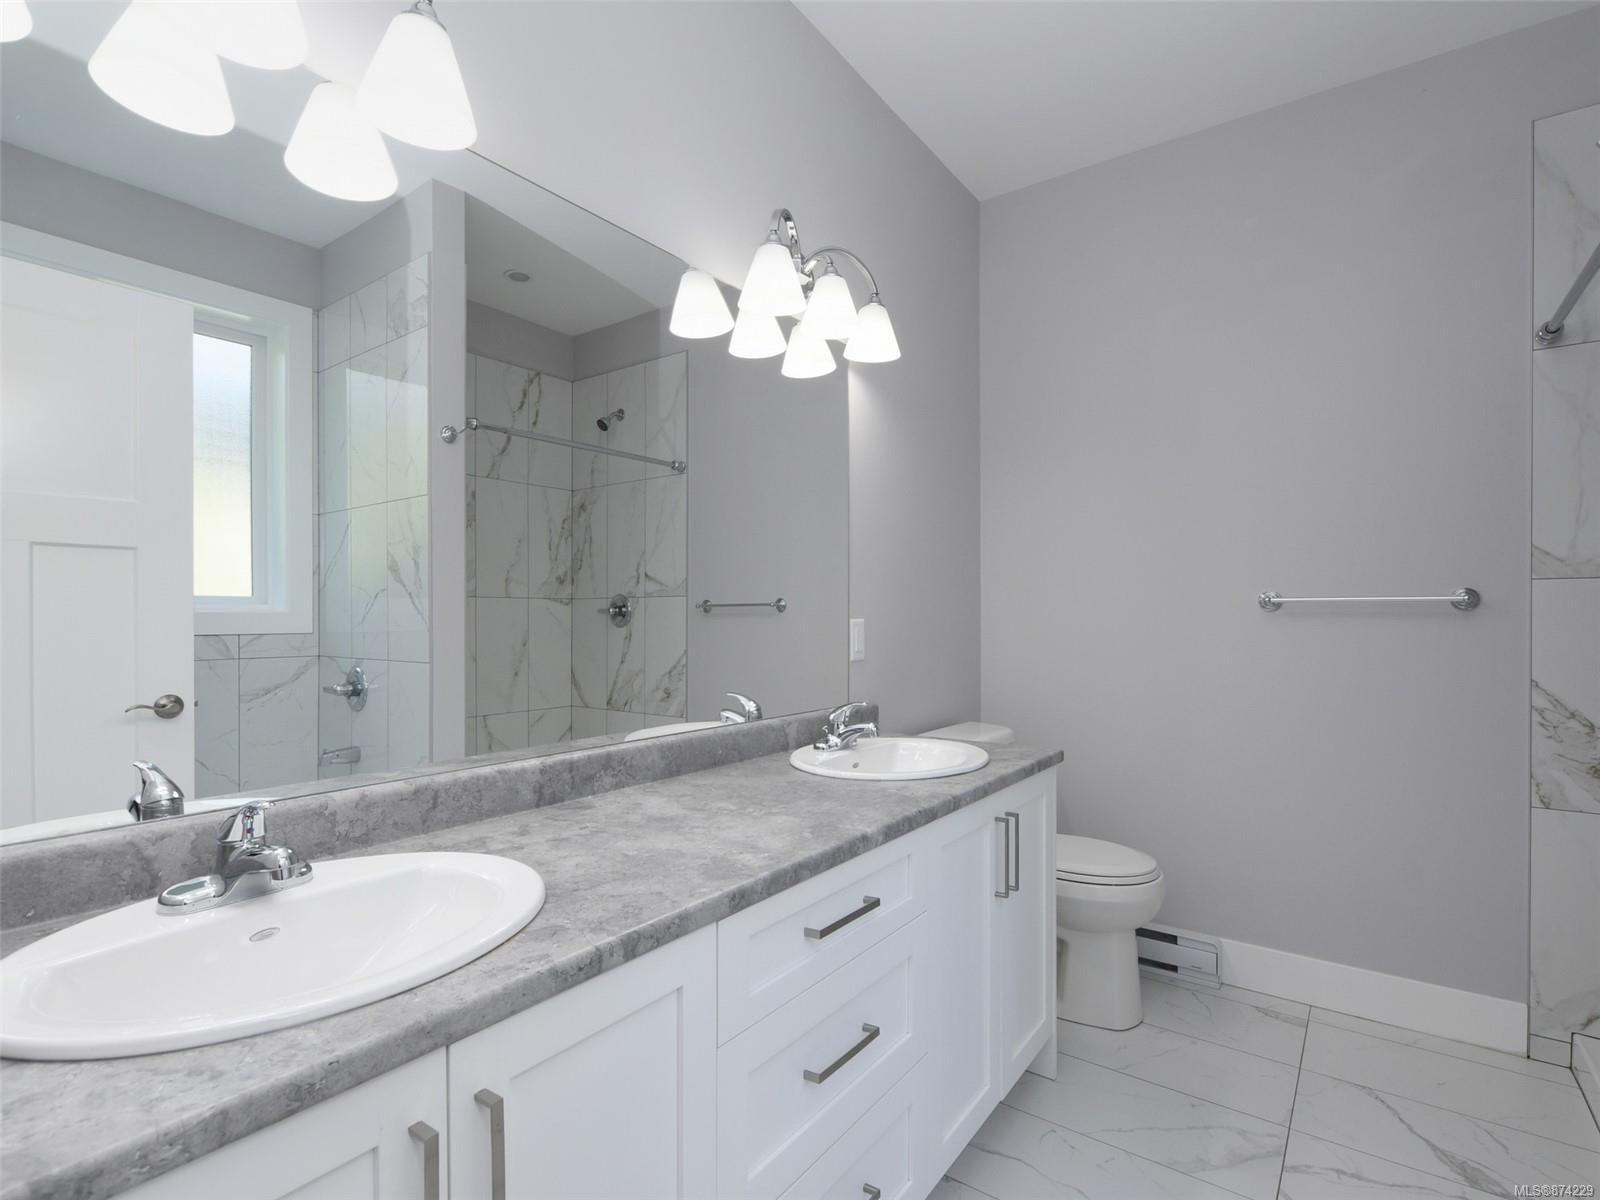 Photo 11: Photos: 1921 Tominny Rd in : Sk Sooke Vill Core House for sale (Sooke)  : MLS®# 874229